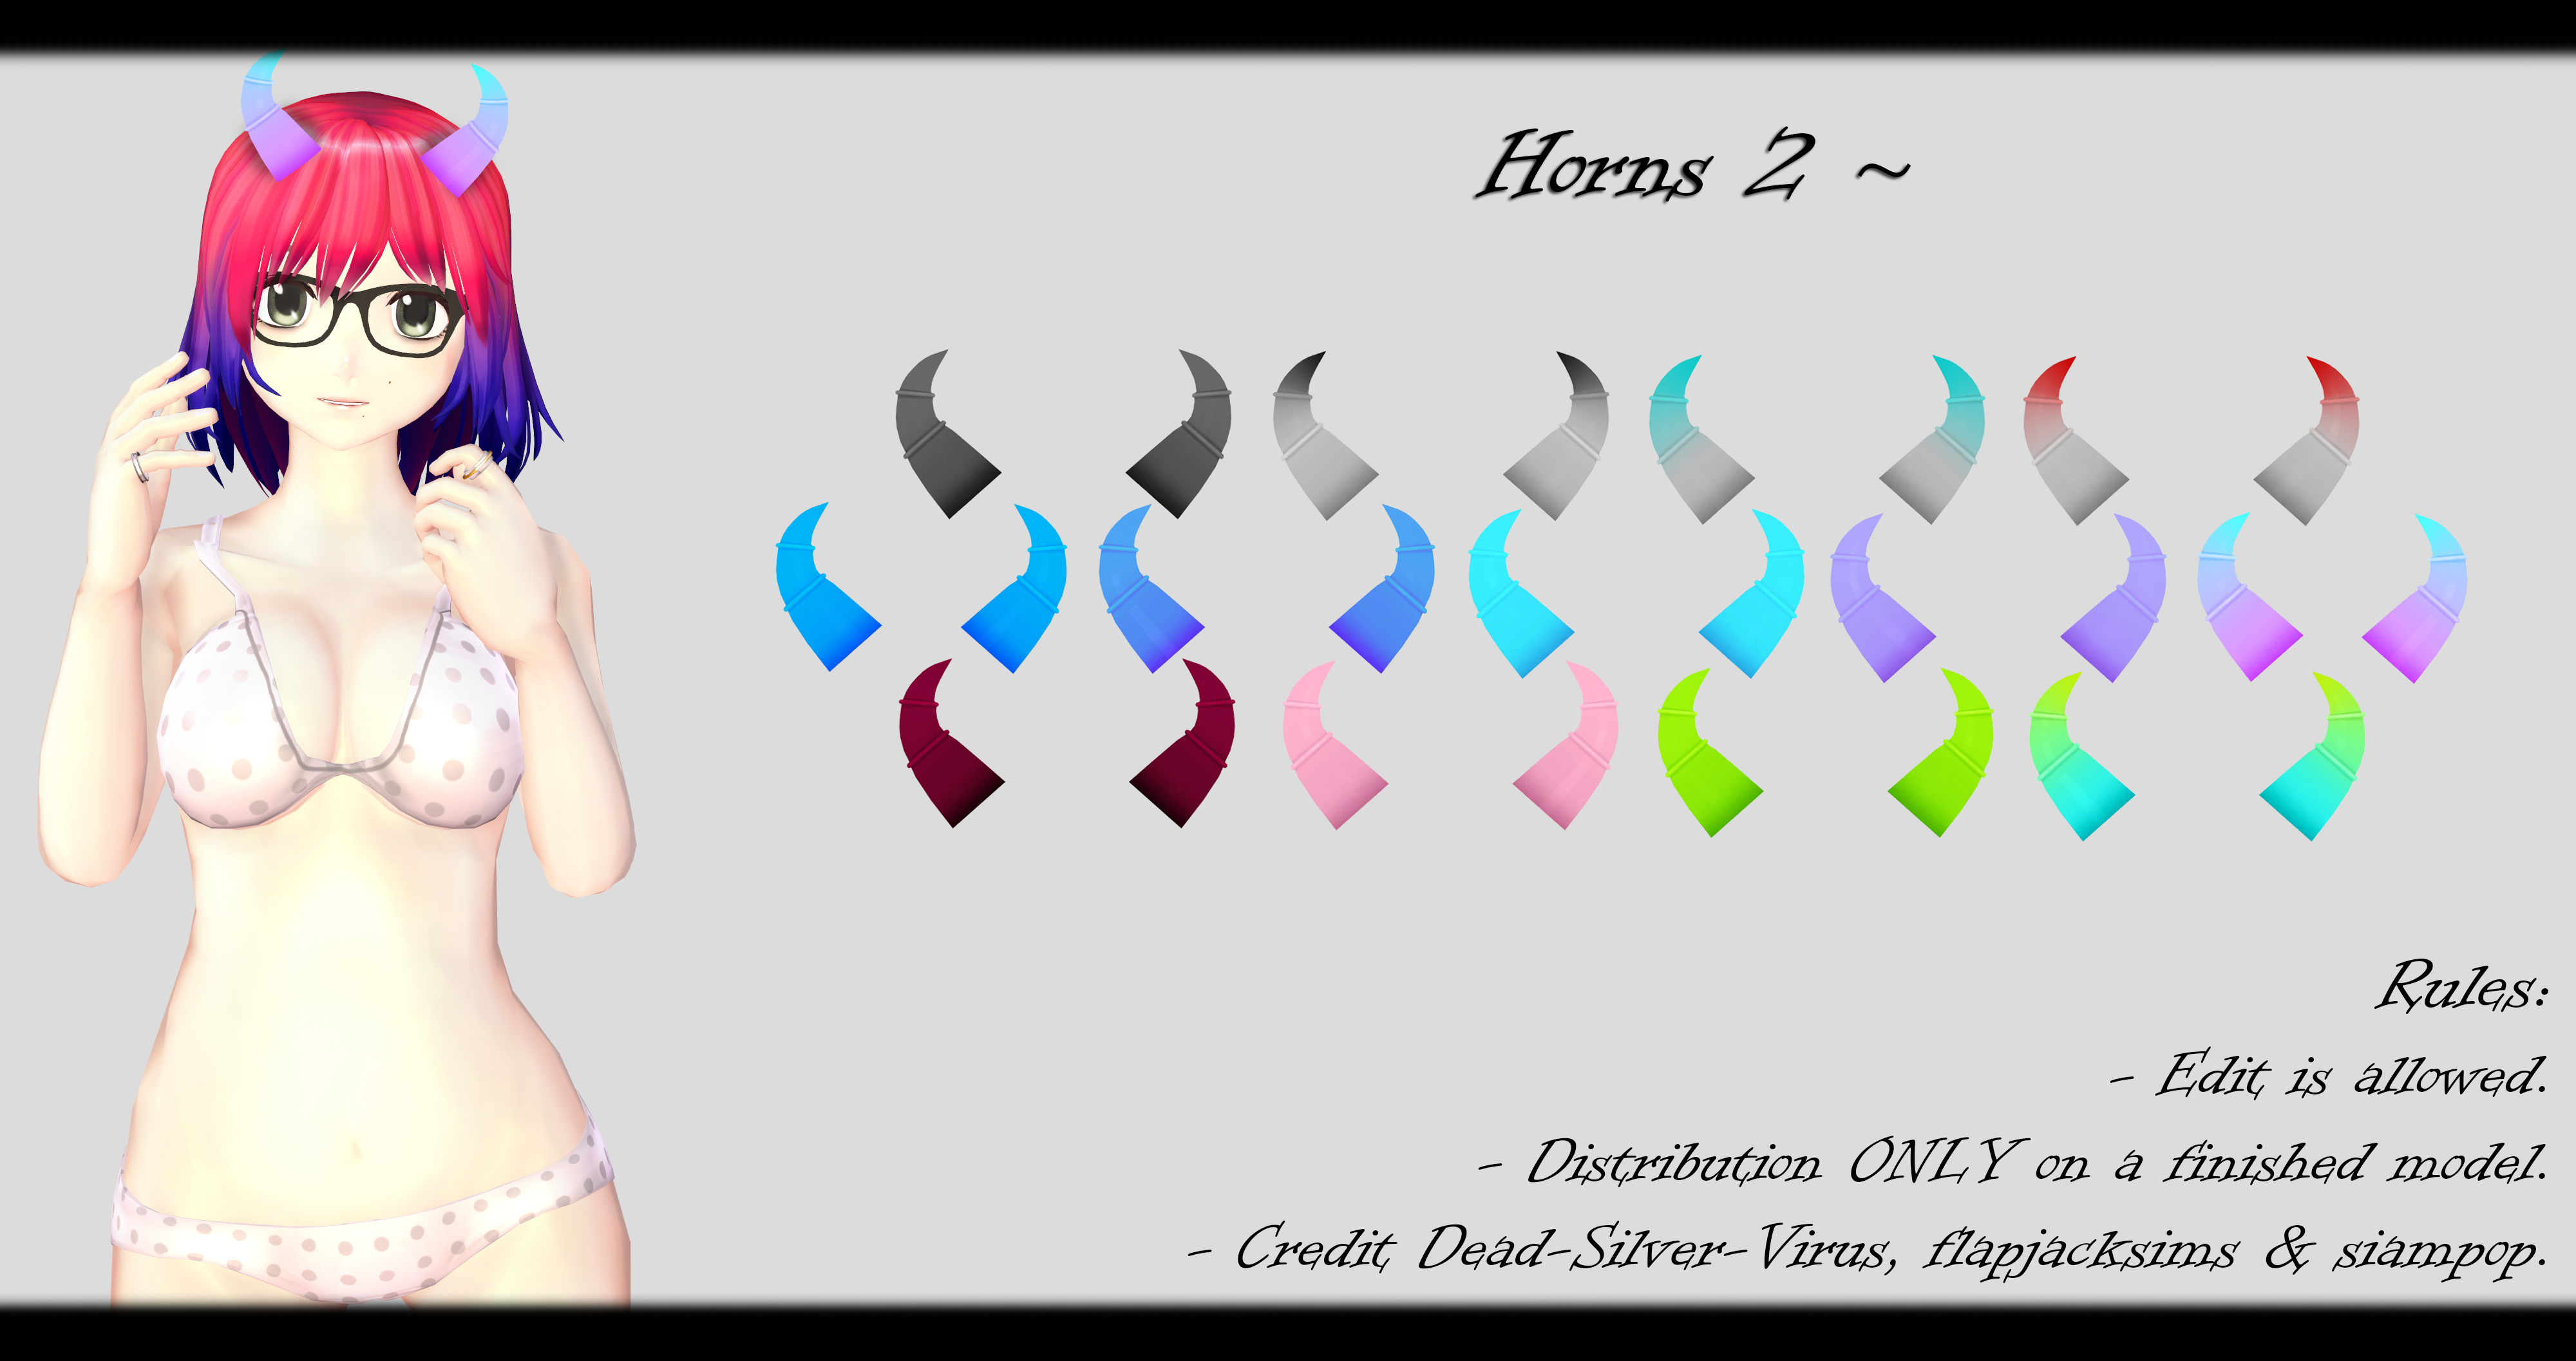 [MMD] Horns 2 DL ~